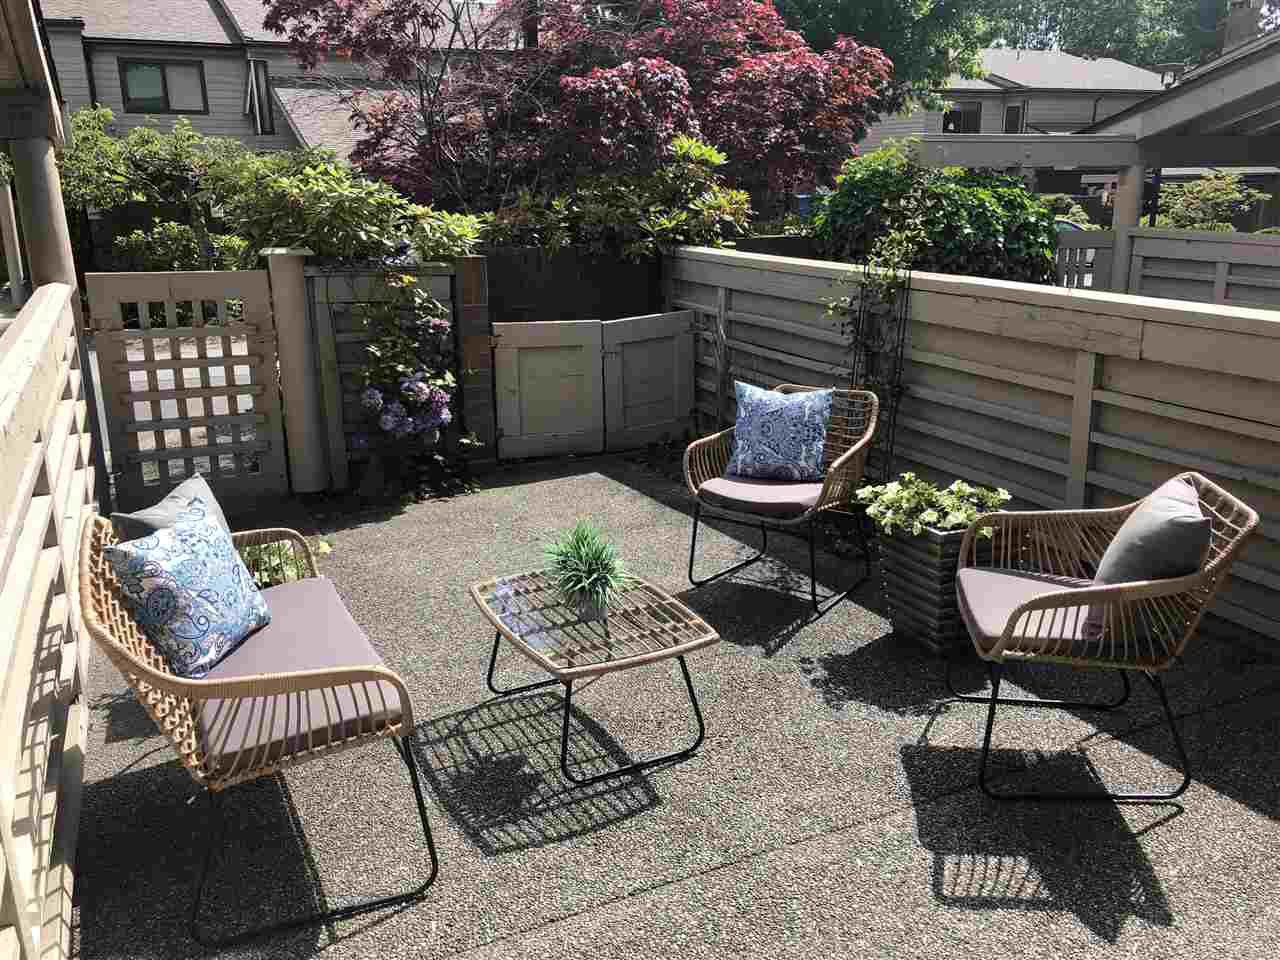 Photo 8: Photos: 2159 MCMULLEN Avenue in Vancouver: Quilchena Townhouse for sale (Vancouver West)  : MLS®# R2455599